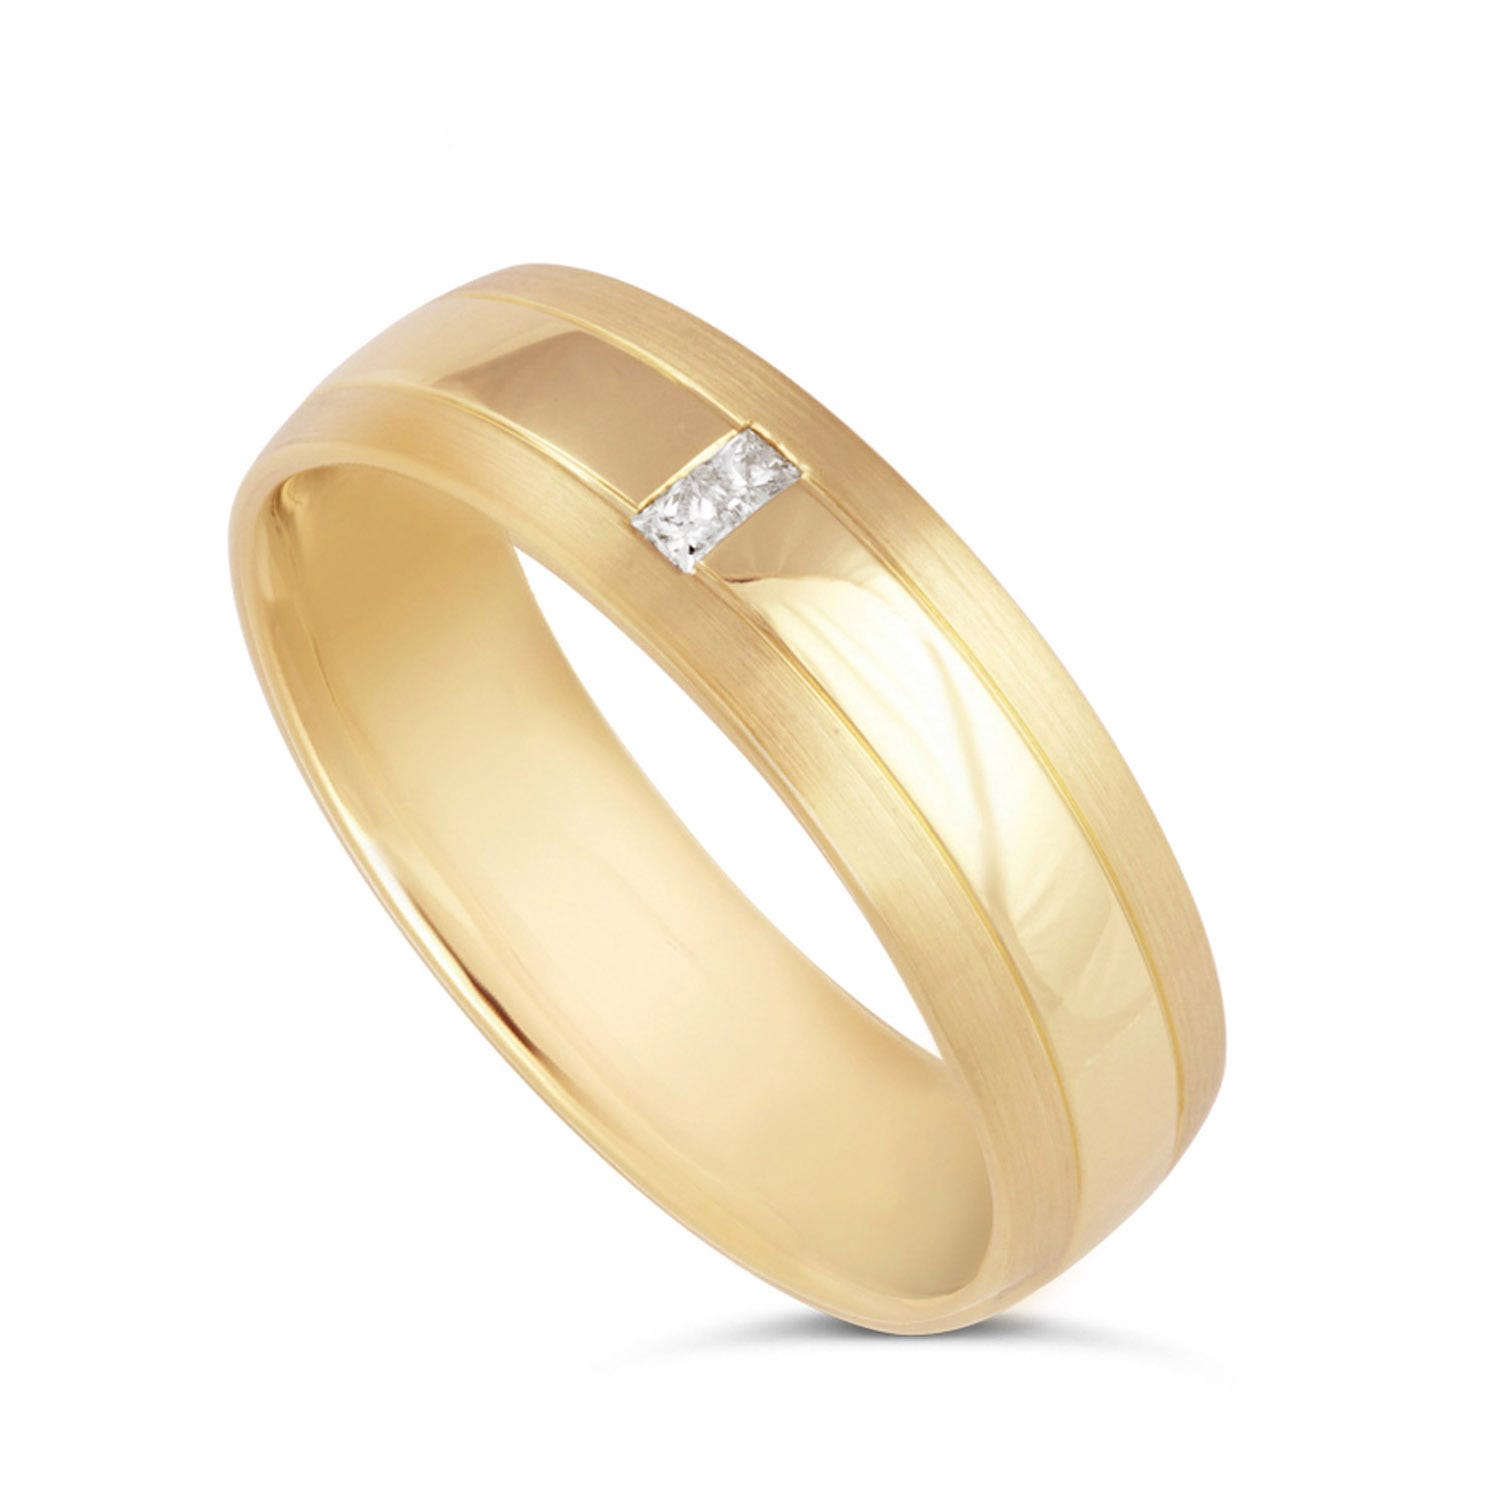 Men's 9ct gold princess cut diamond 6mm wedding ring